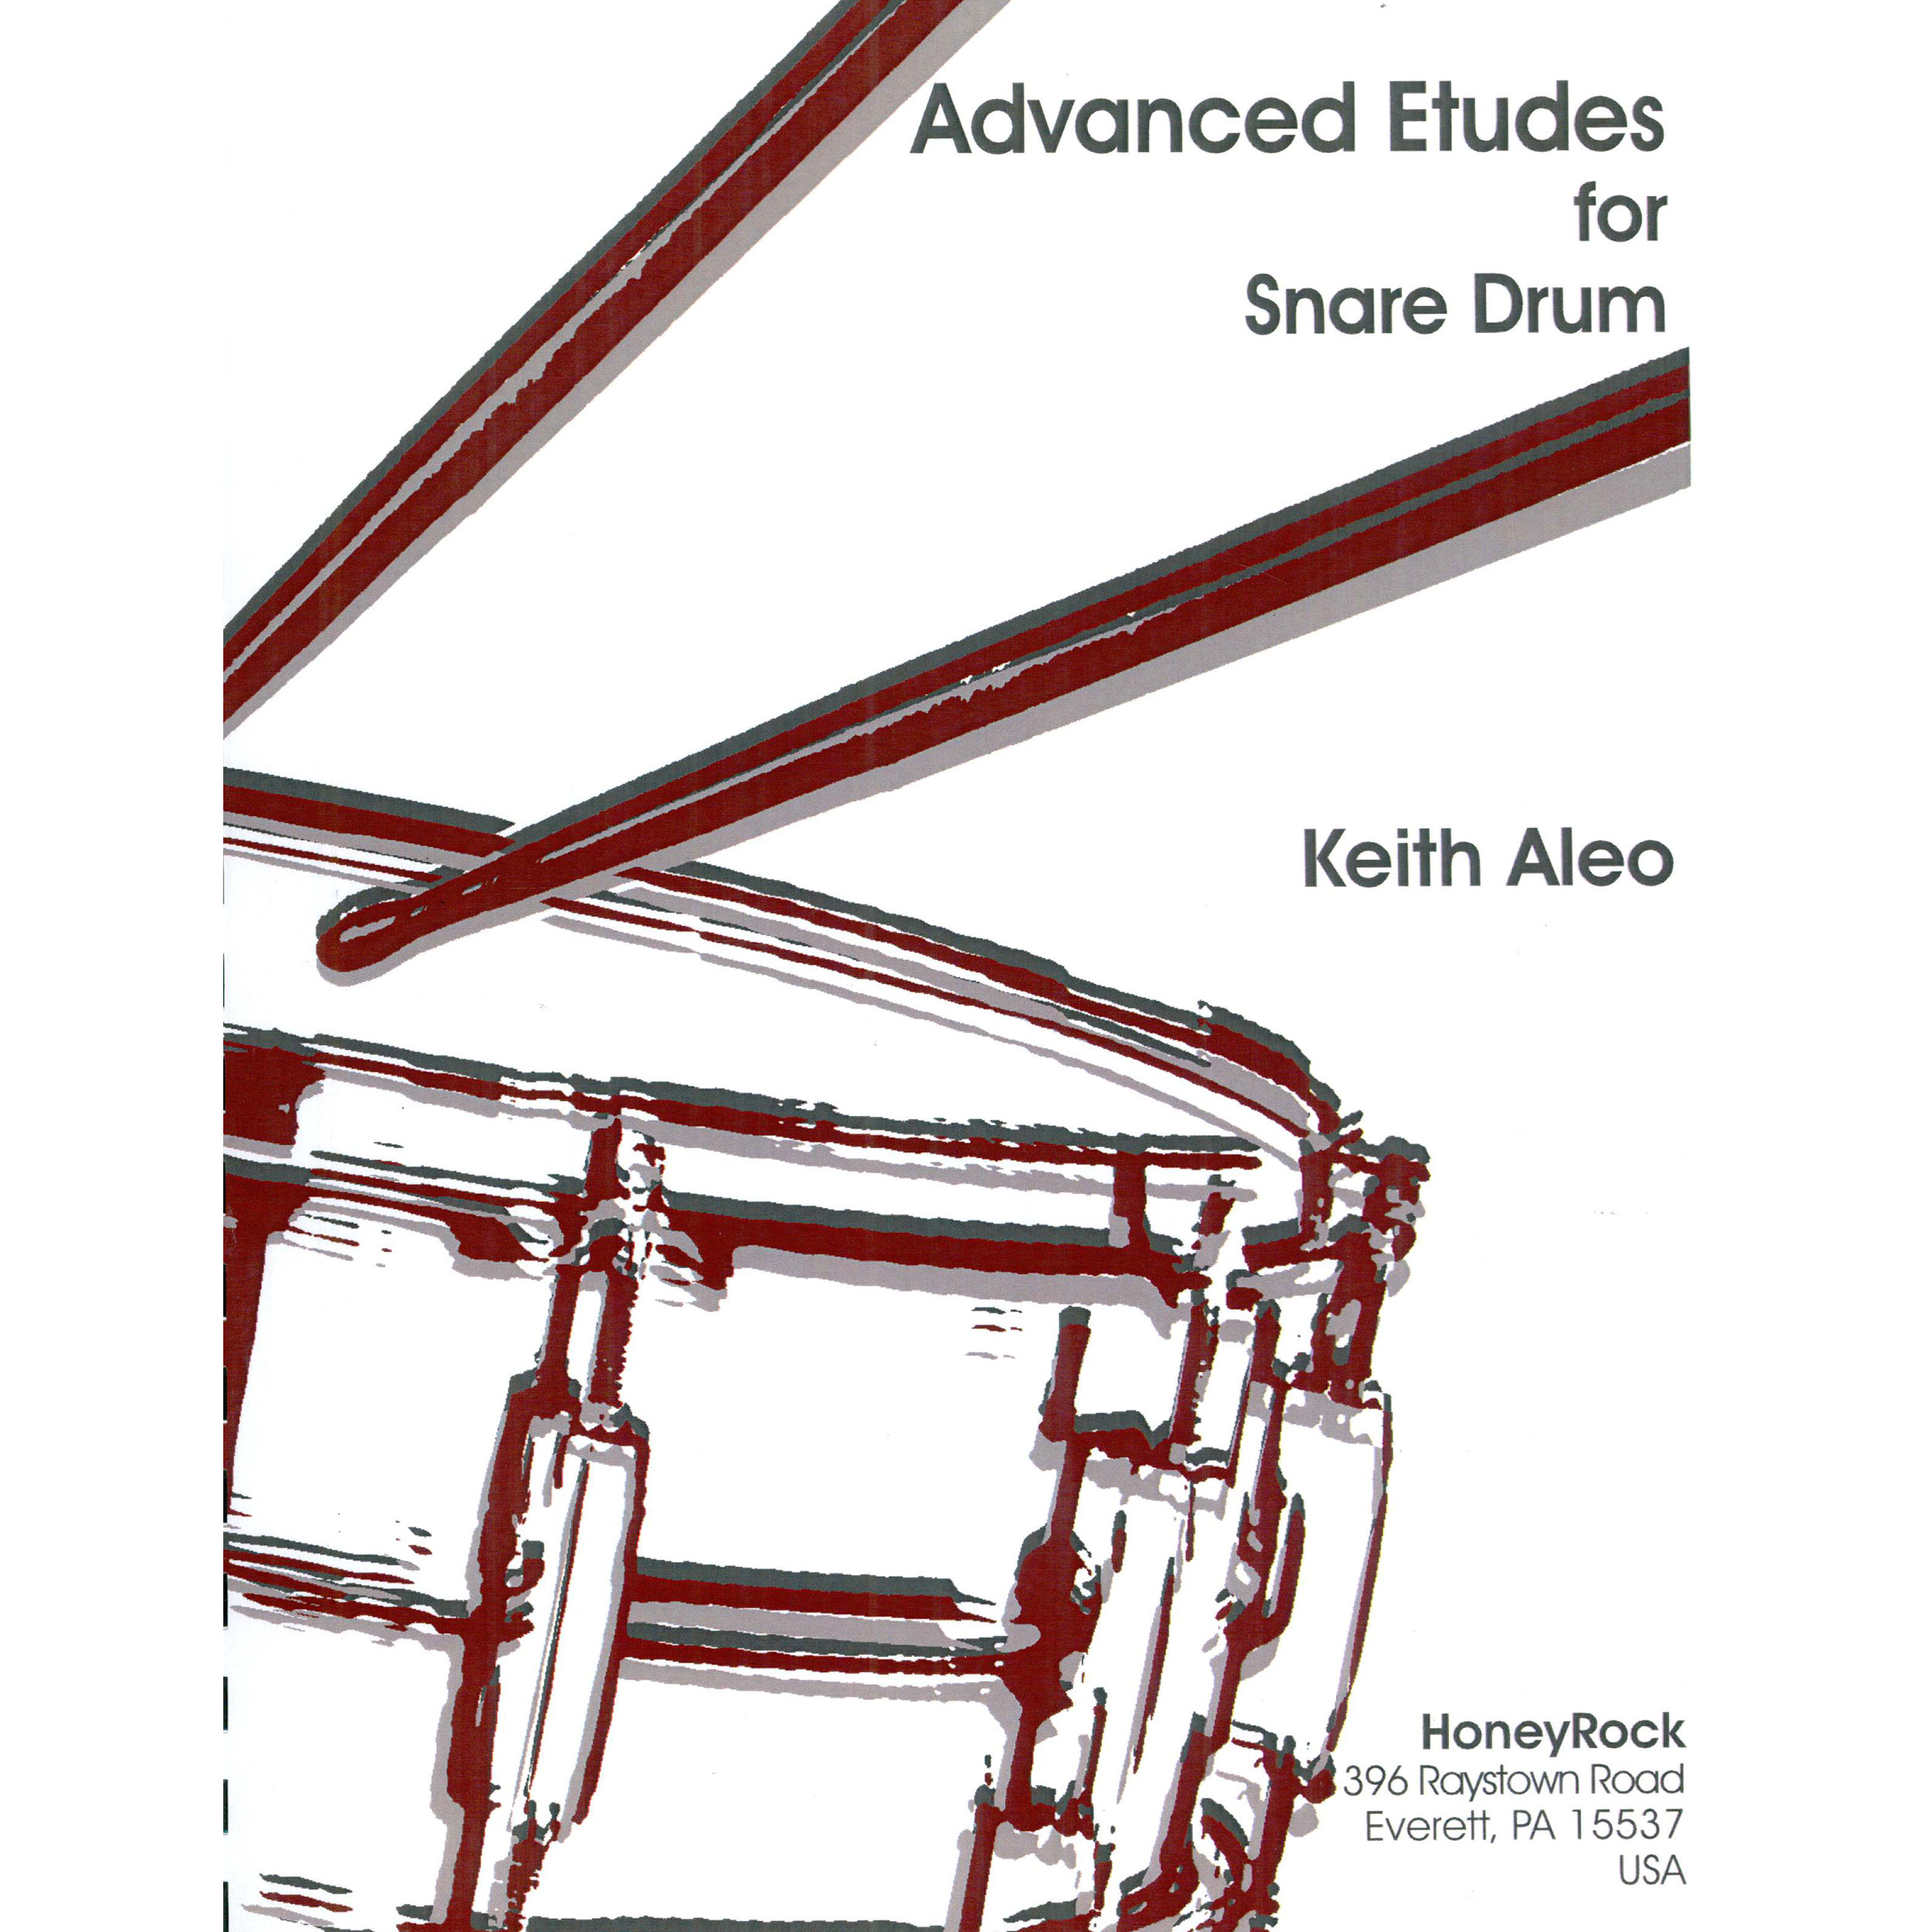 Advanced Etudes for Snare Drum by Keith Aleo